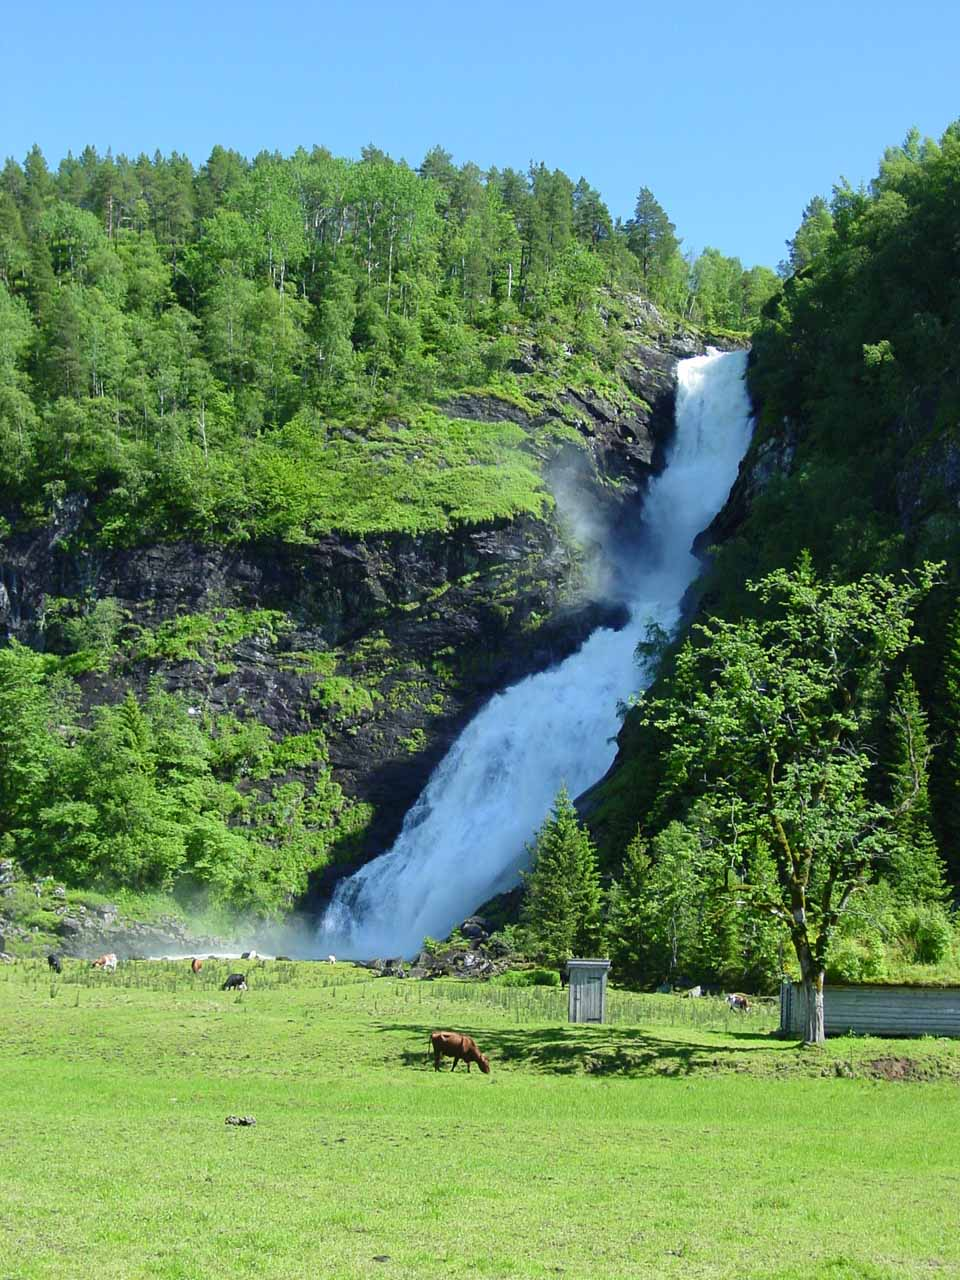 View of Huldrefossen with one of the cows grazing in the field before us